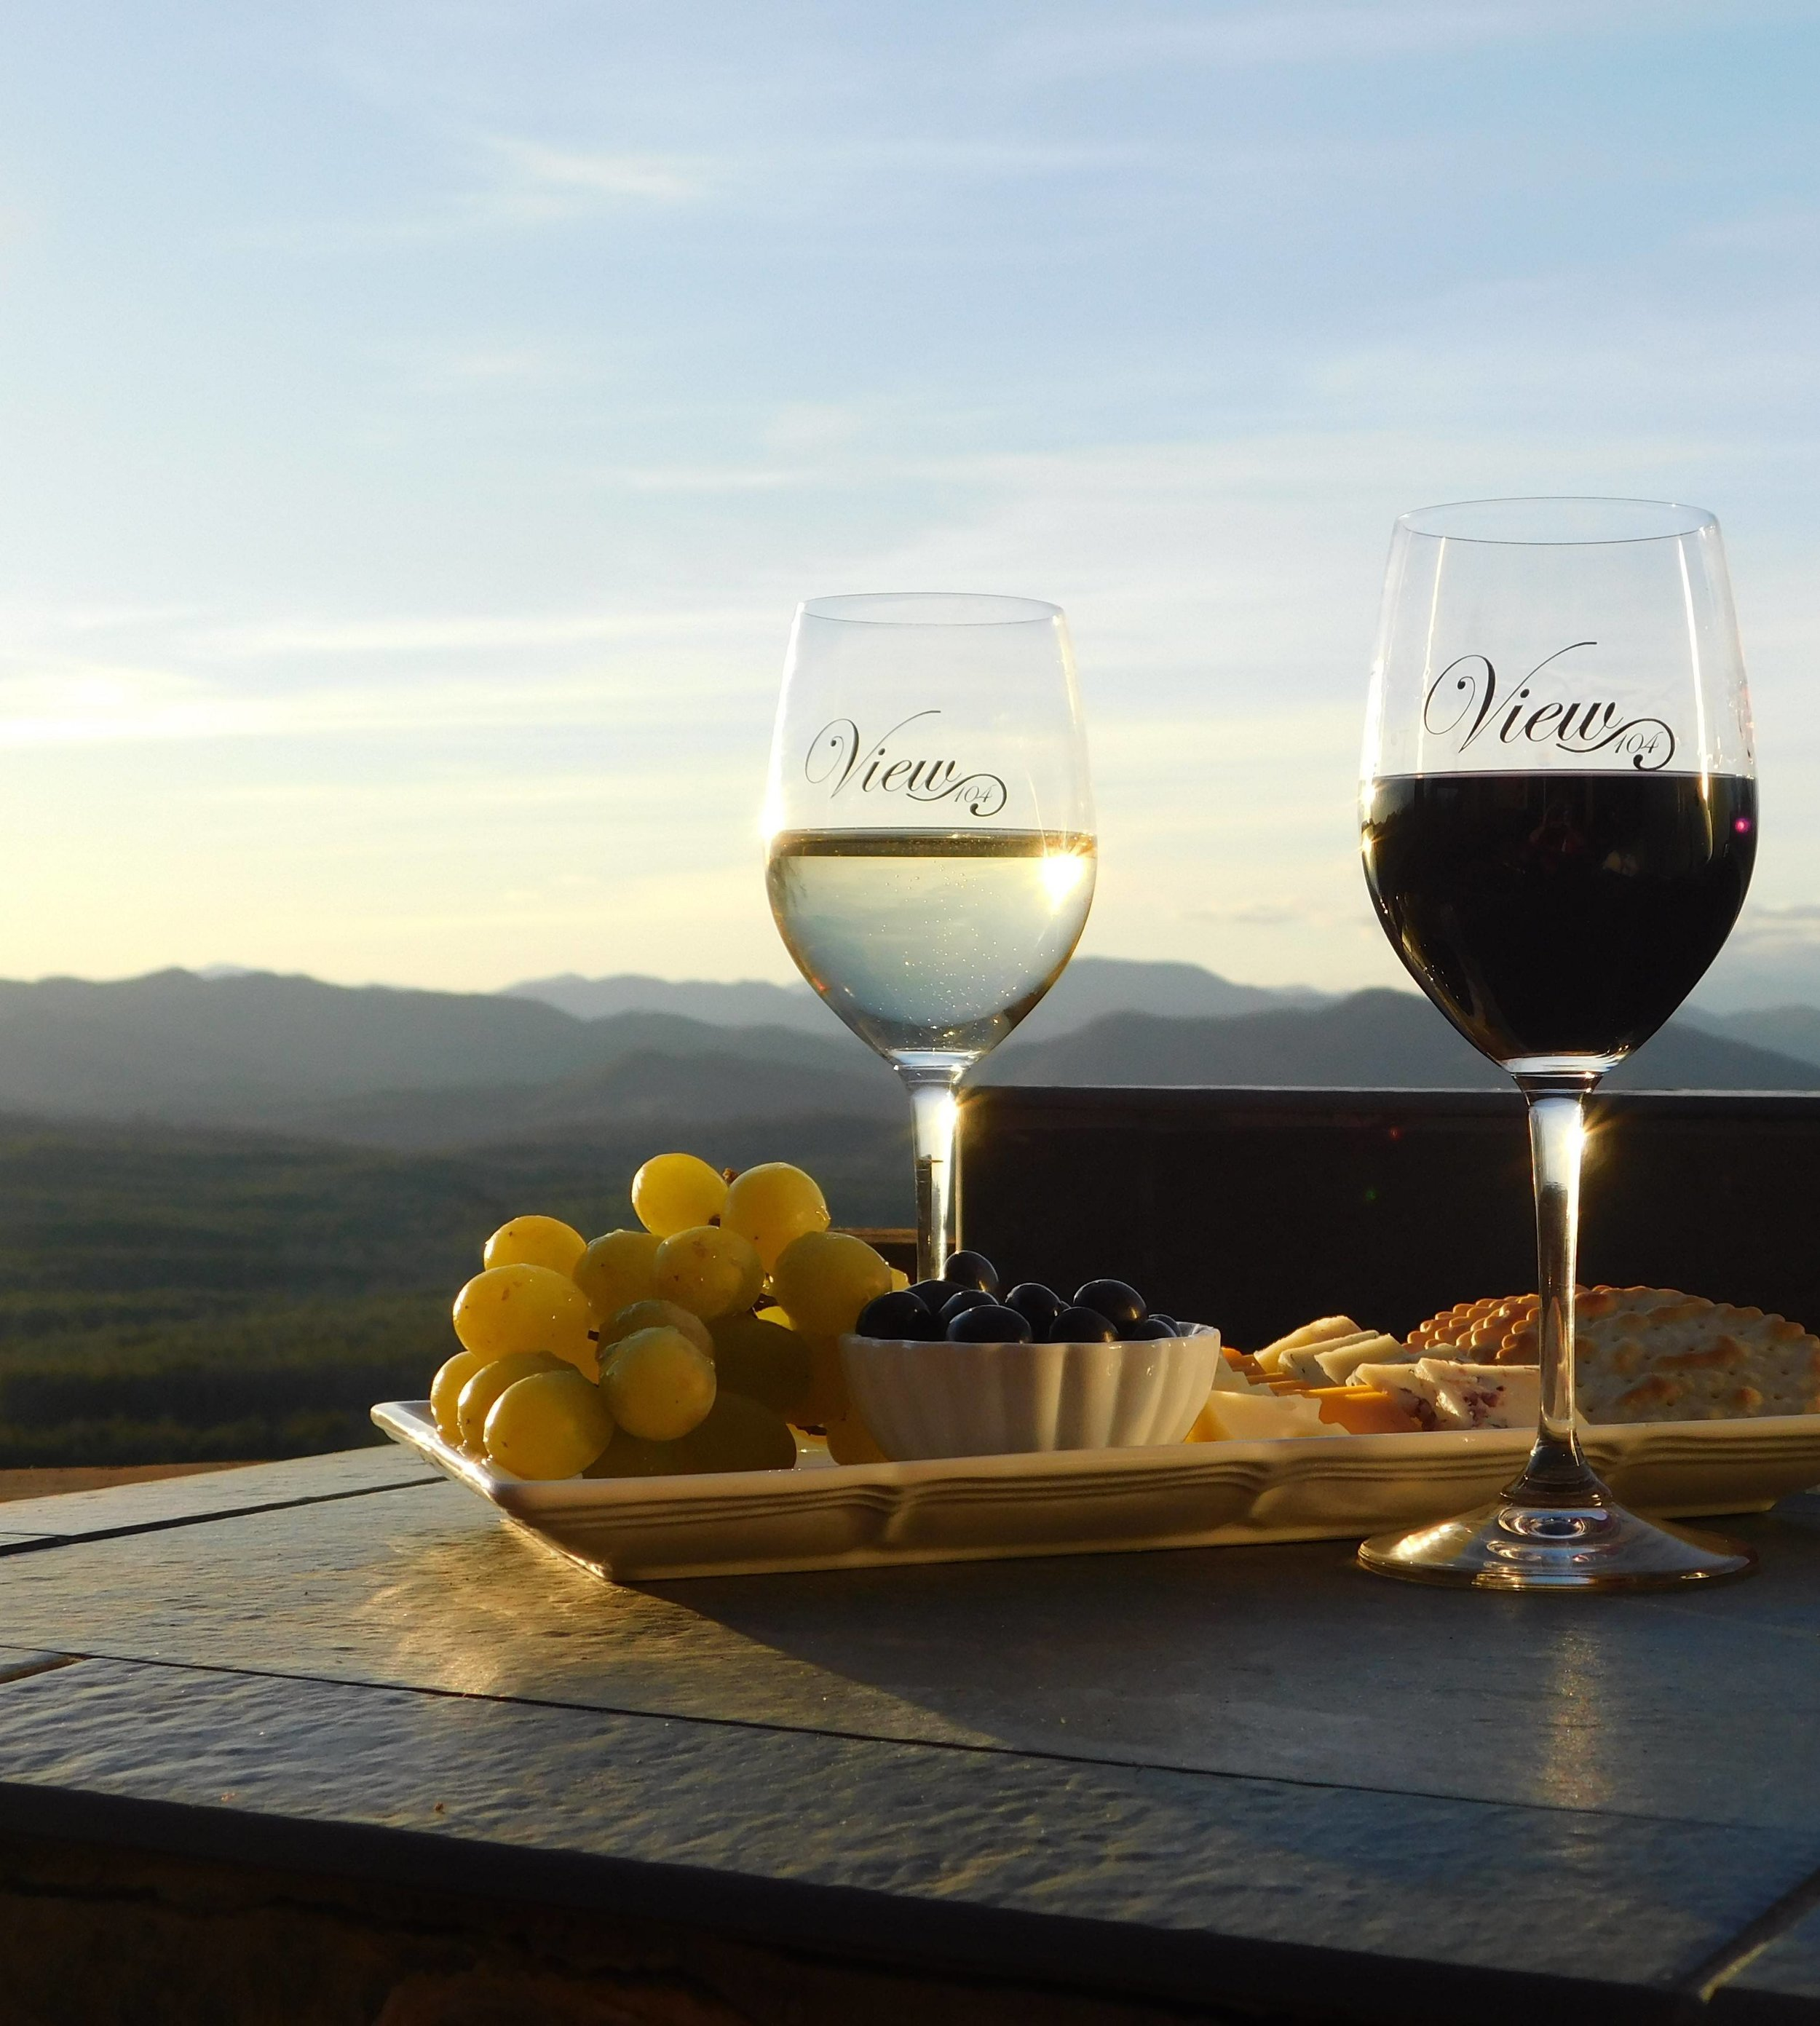 Wine and cheese are served every evening before sunset